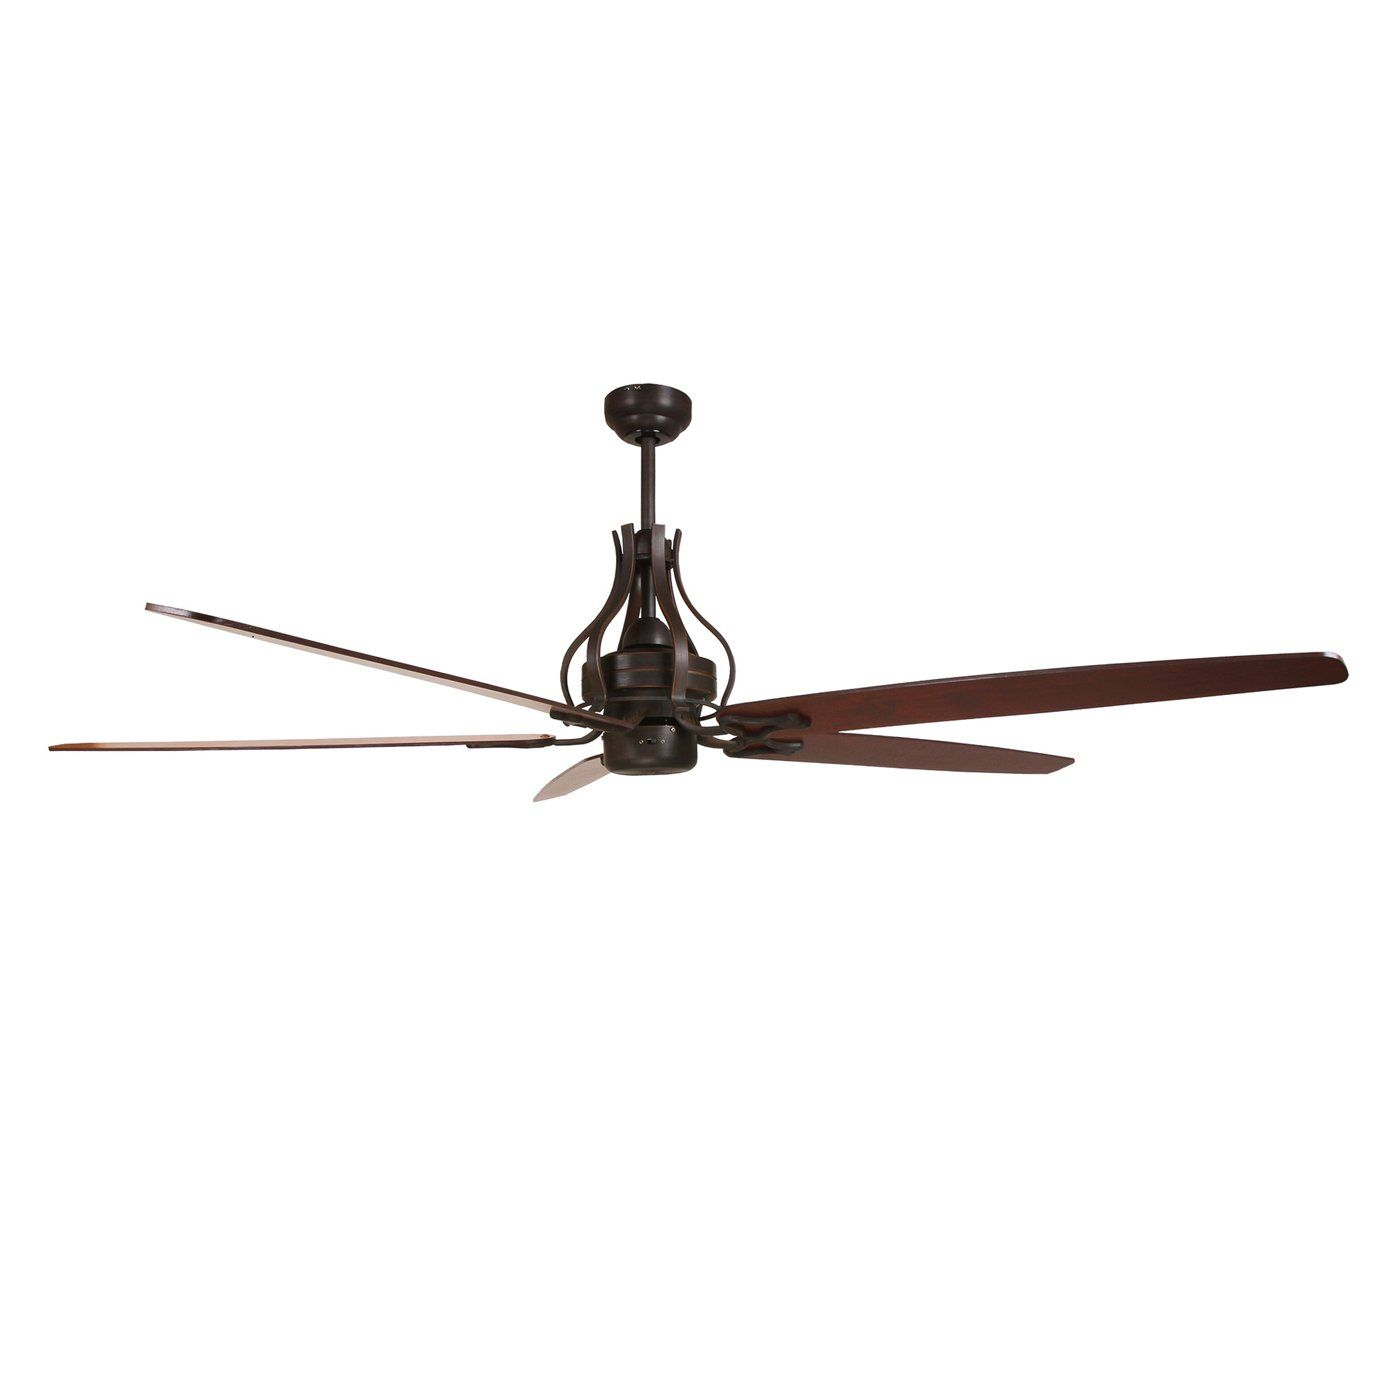 Yosemite Home Decor WHITAKER ORB NLK 70 In Ceiling Fan with 80 In